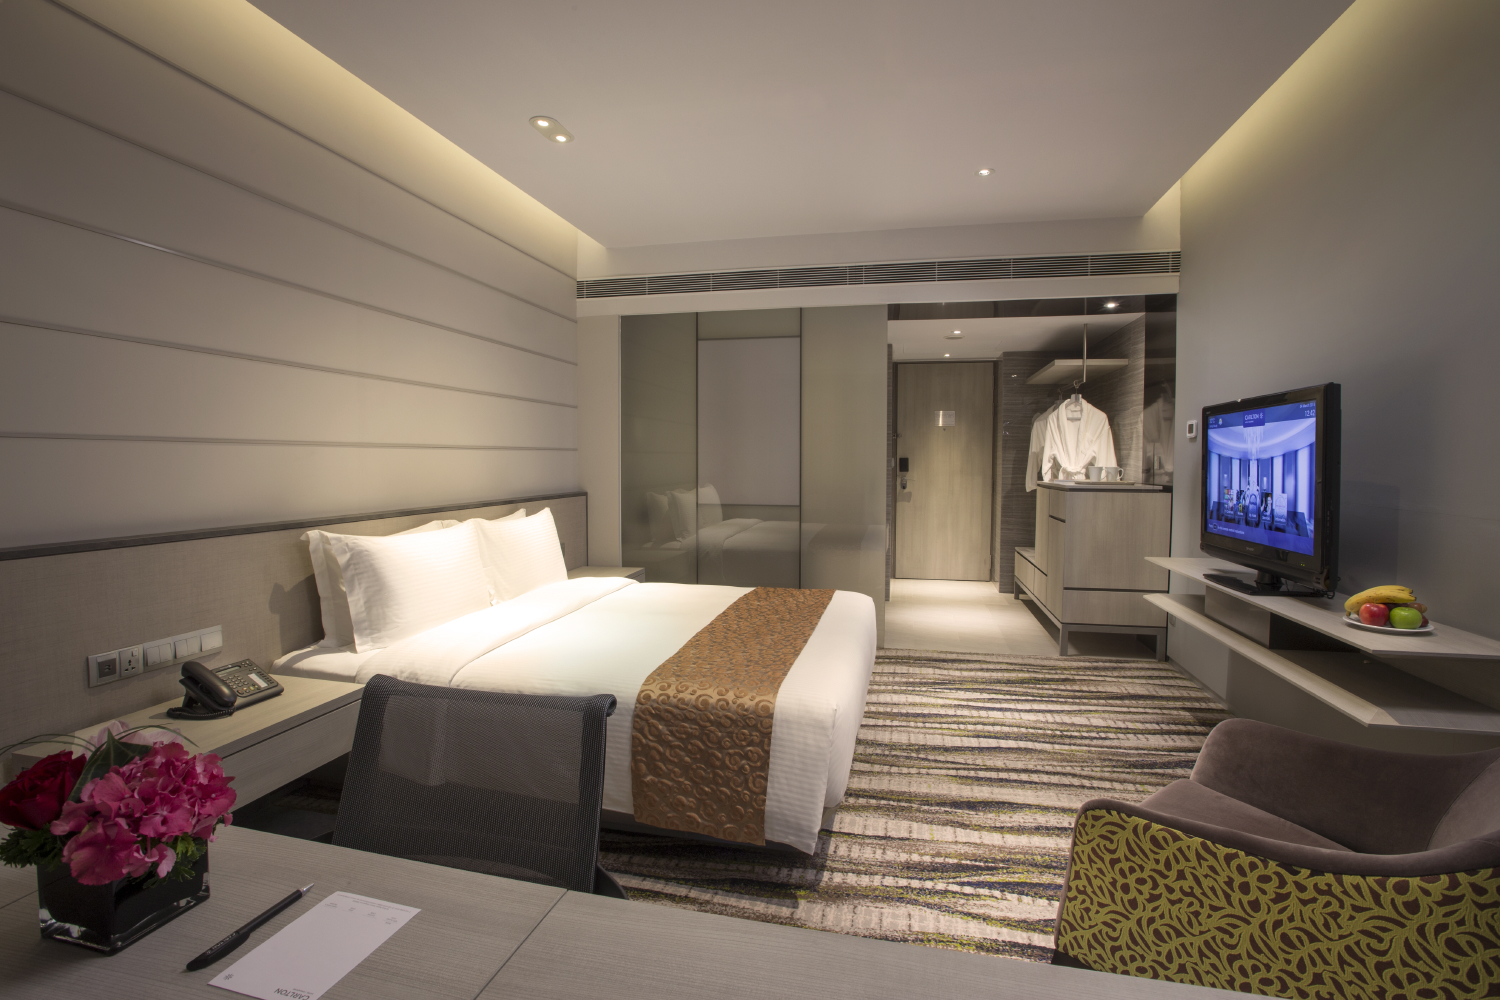 Deluxe Rooms at the Carlton Hotel Singapore | Photo Credit: Carlton Hotel Singapore